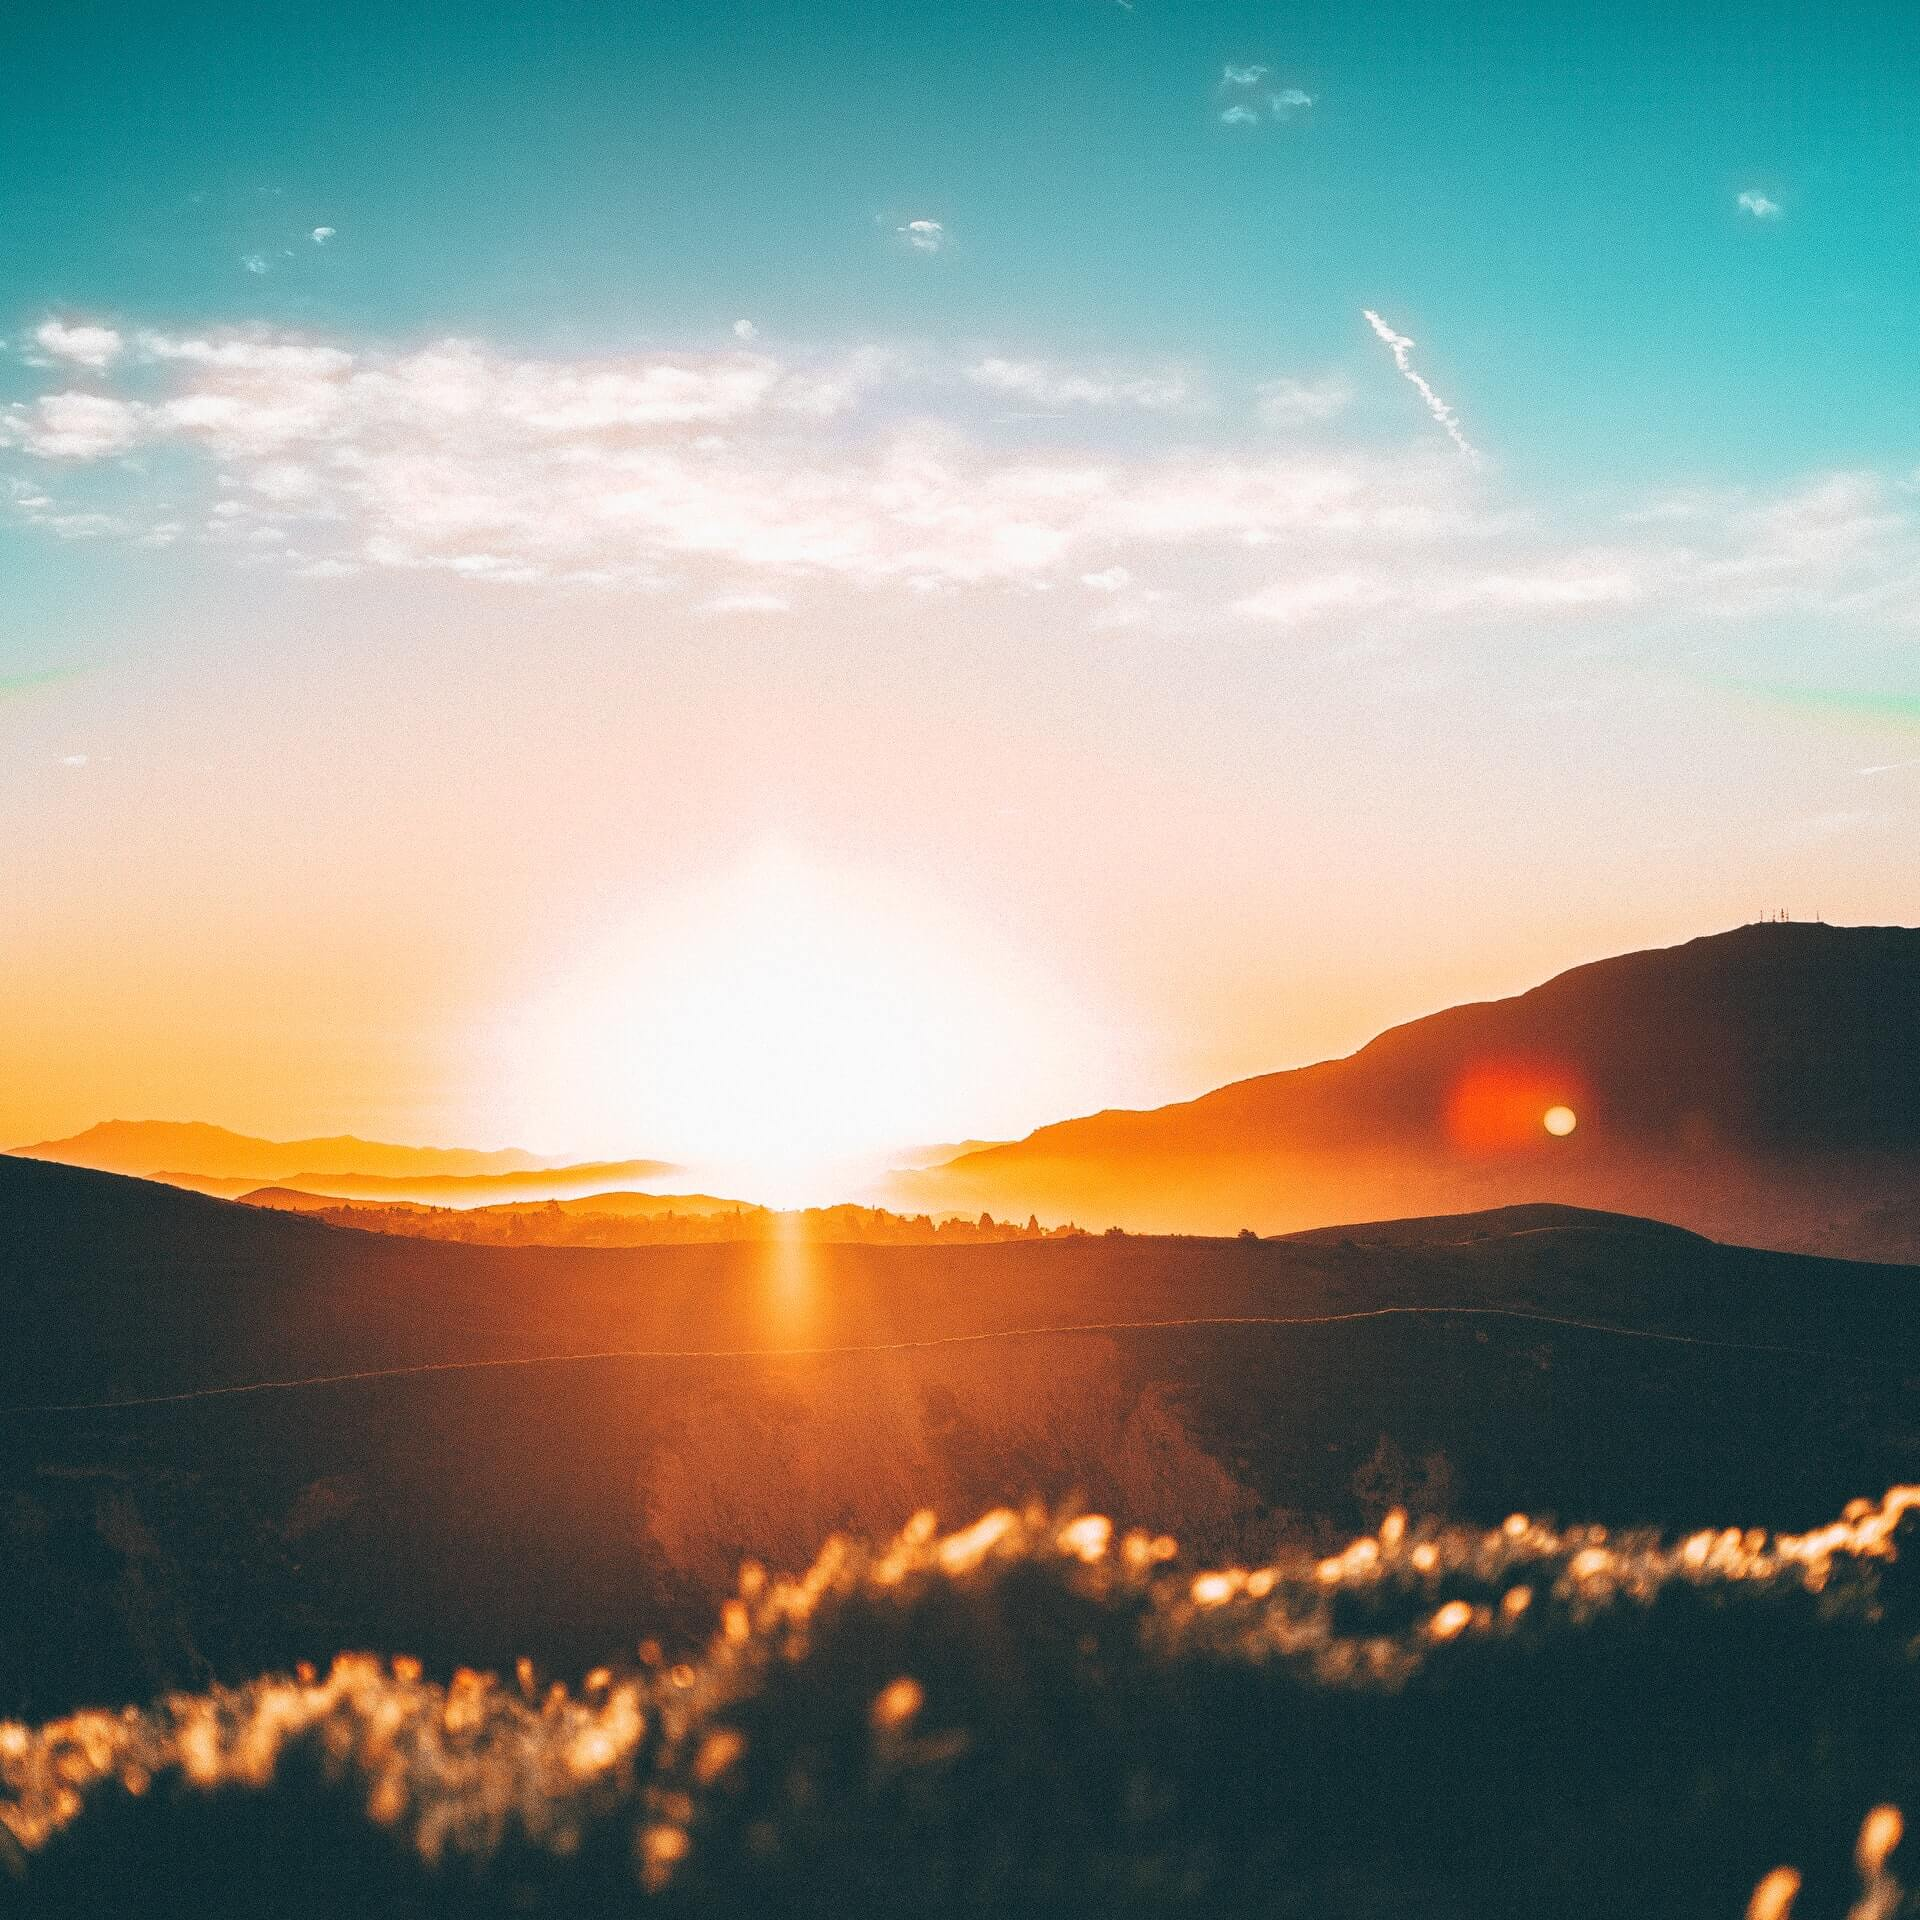 meaning-faith-your-journey-sunrise-over-mountains